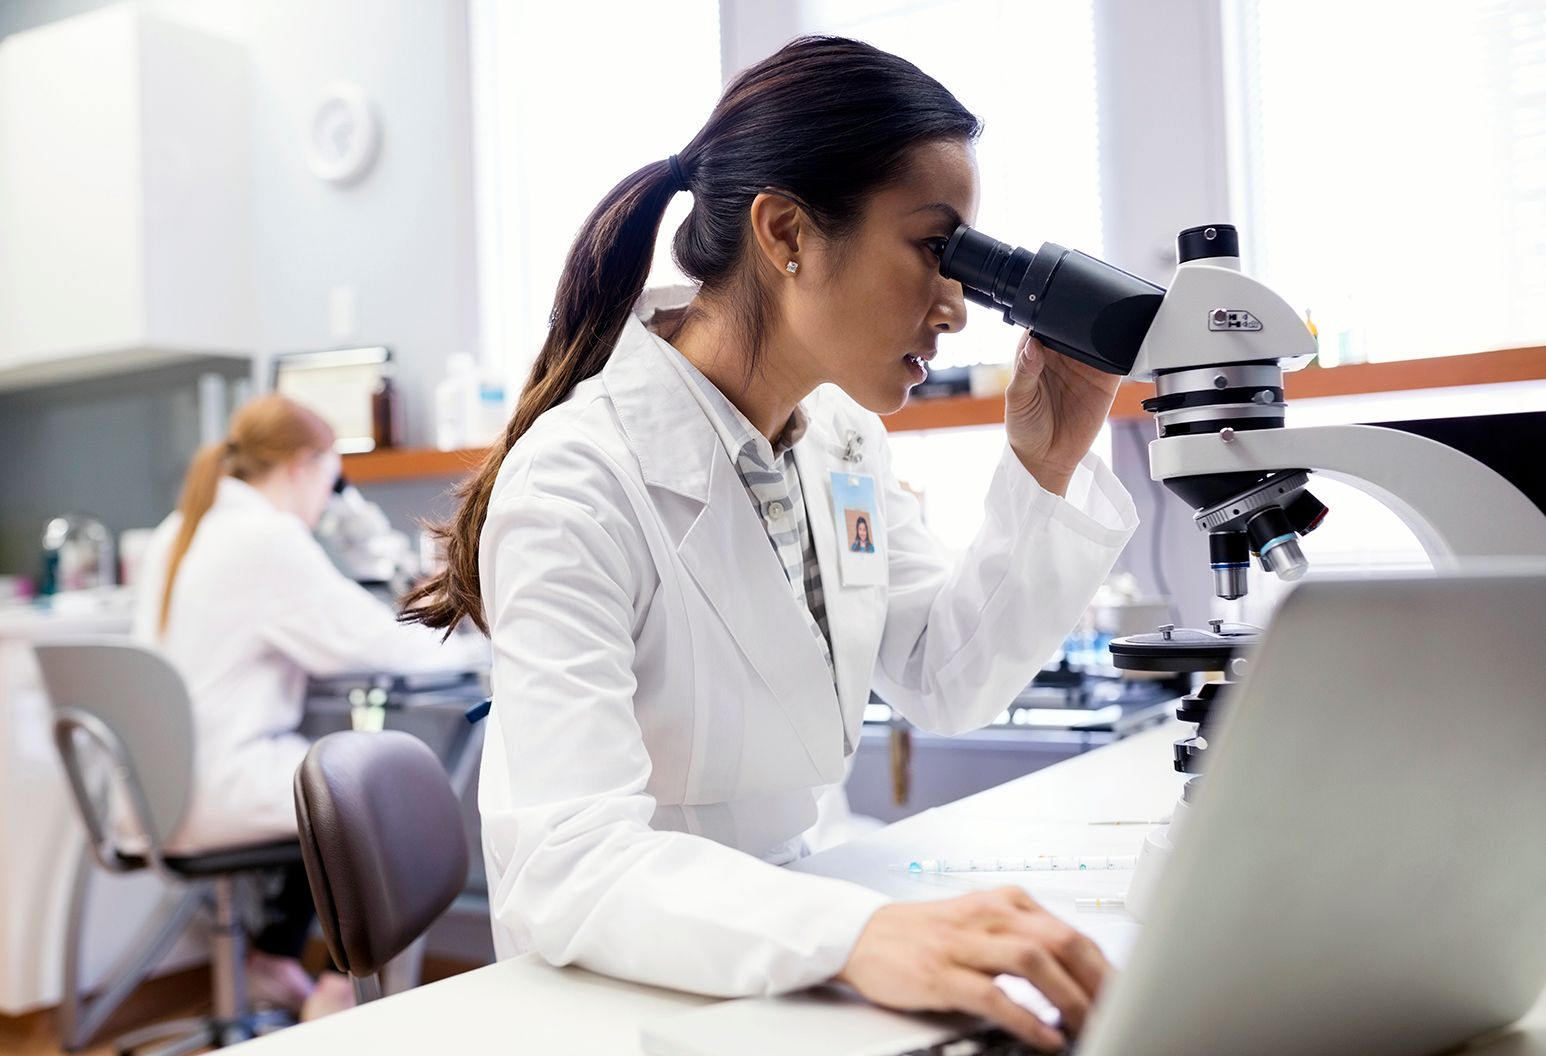 Medical scientist using microscope near laptop in laboratory